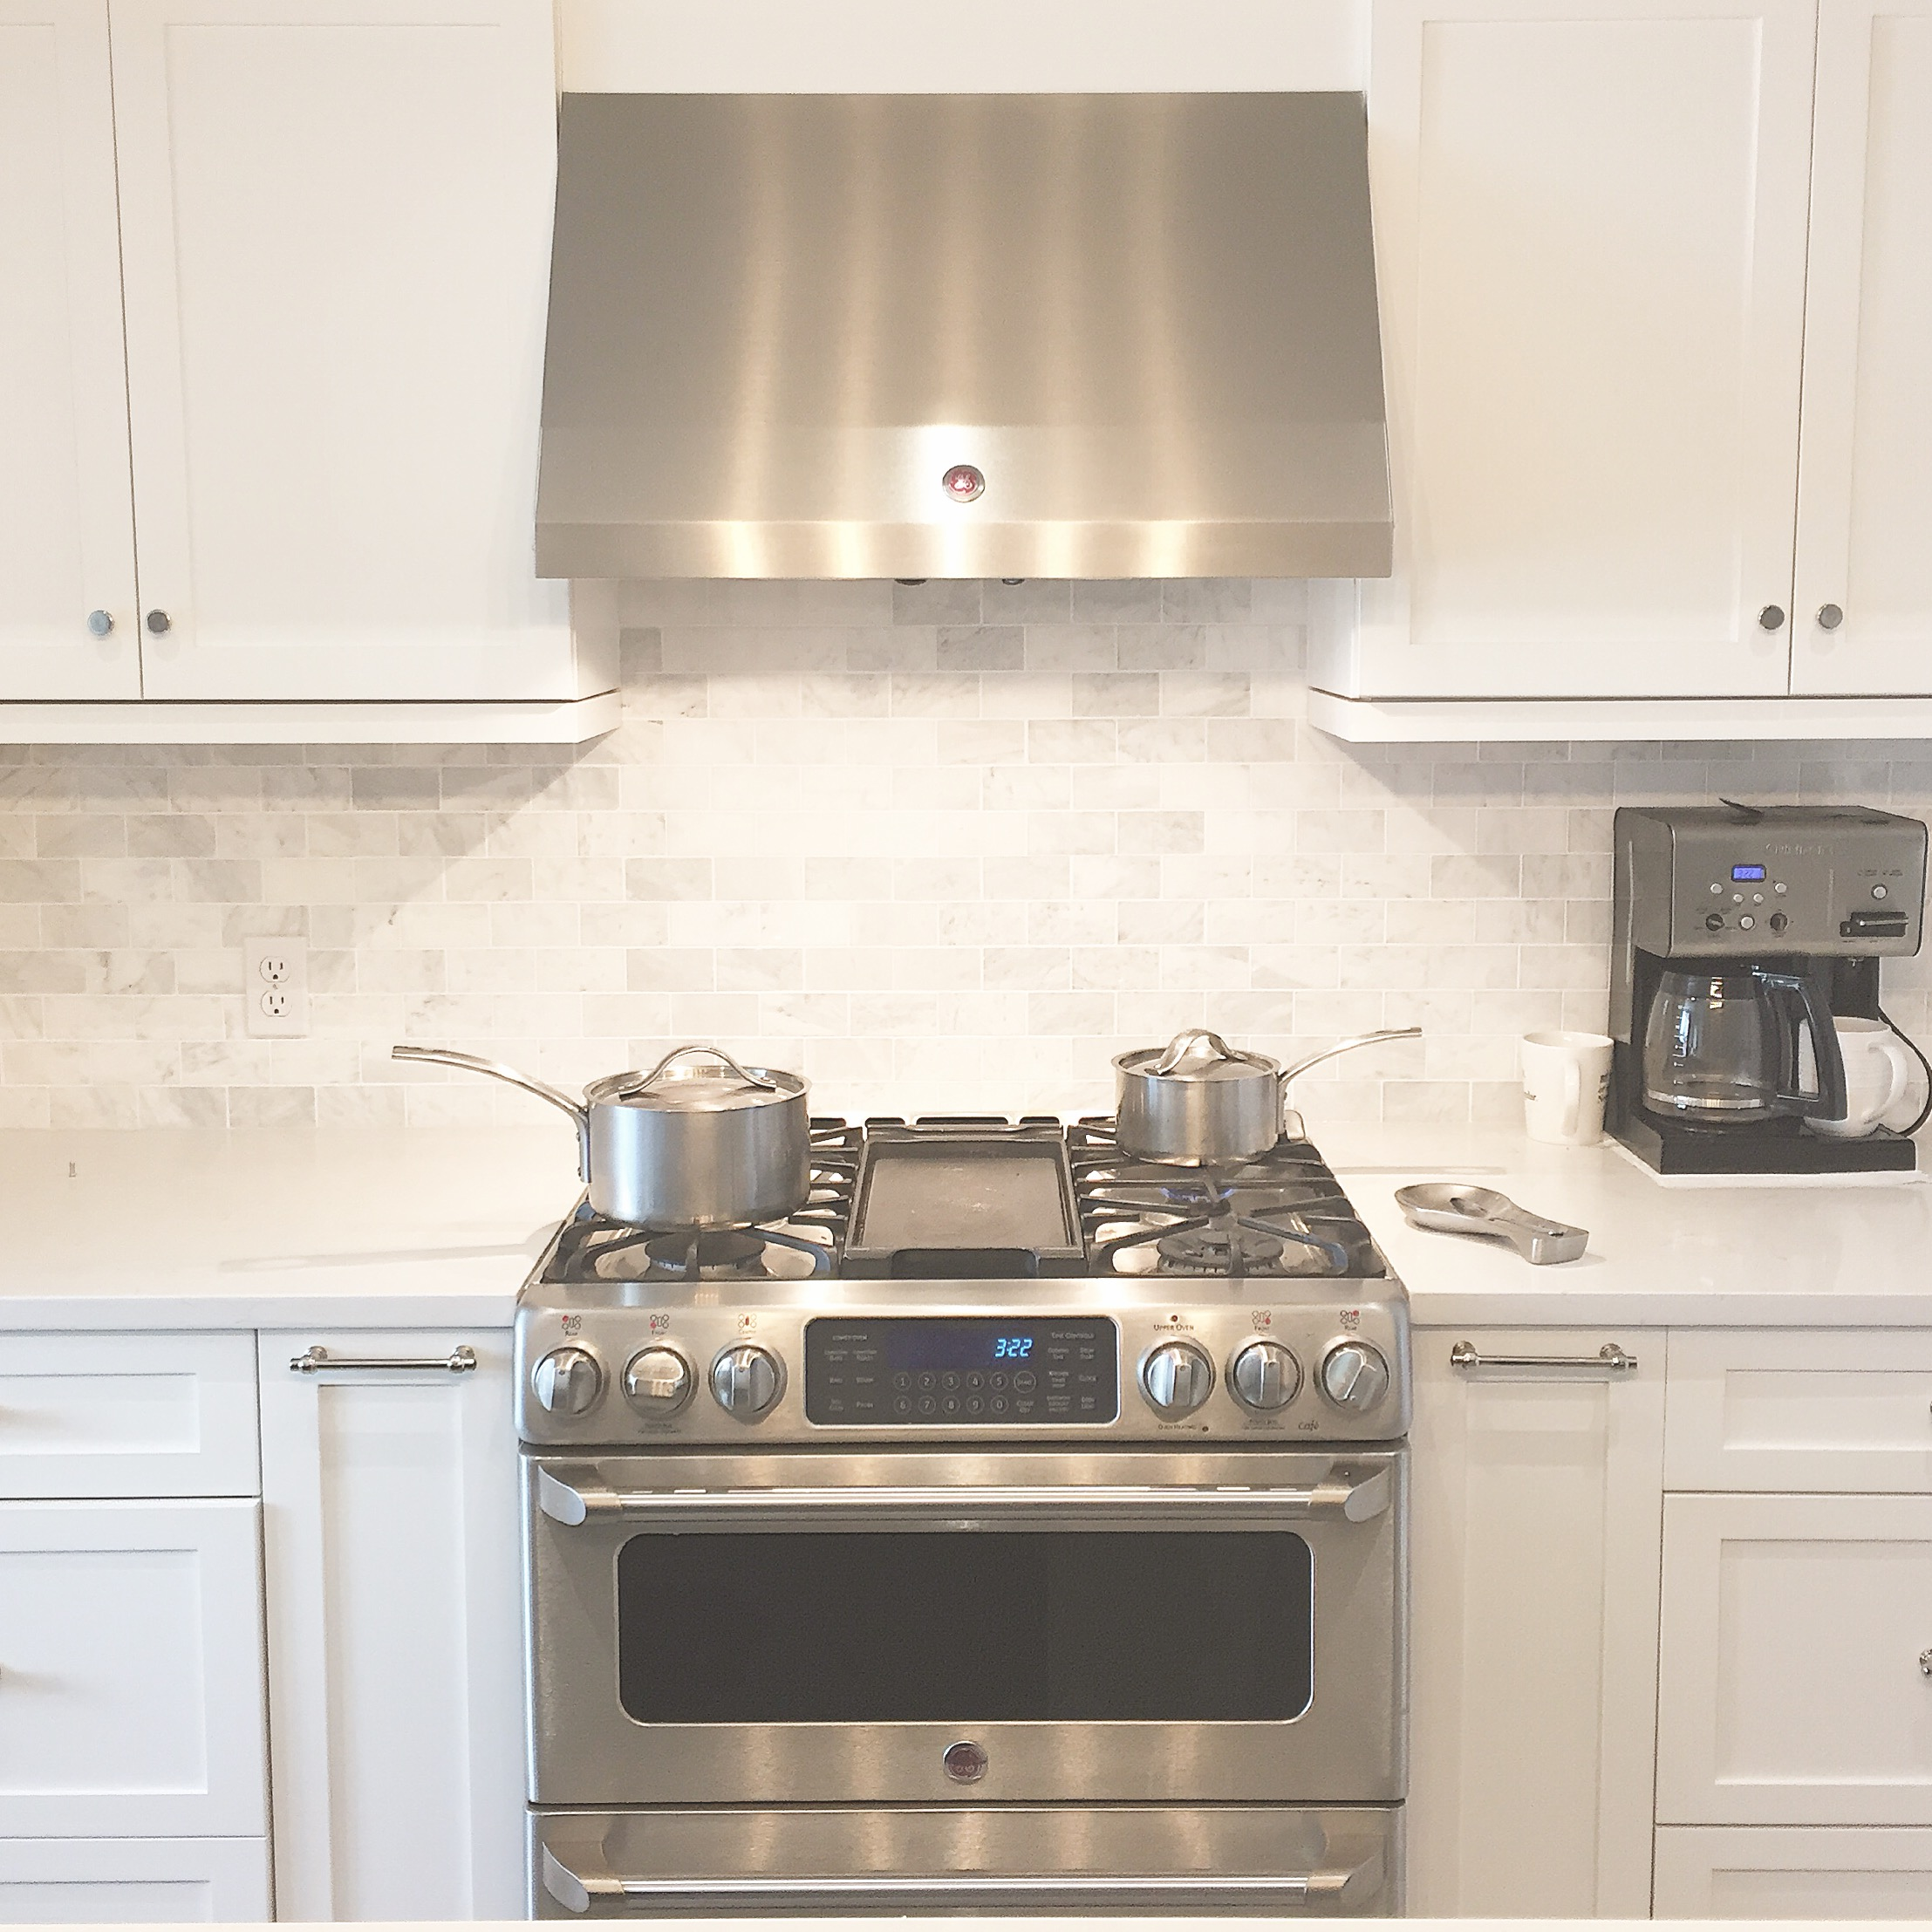 Simple white kitchen with identical cabinets on either side of the range.